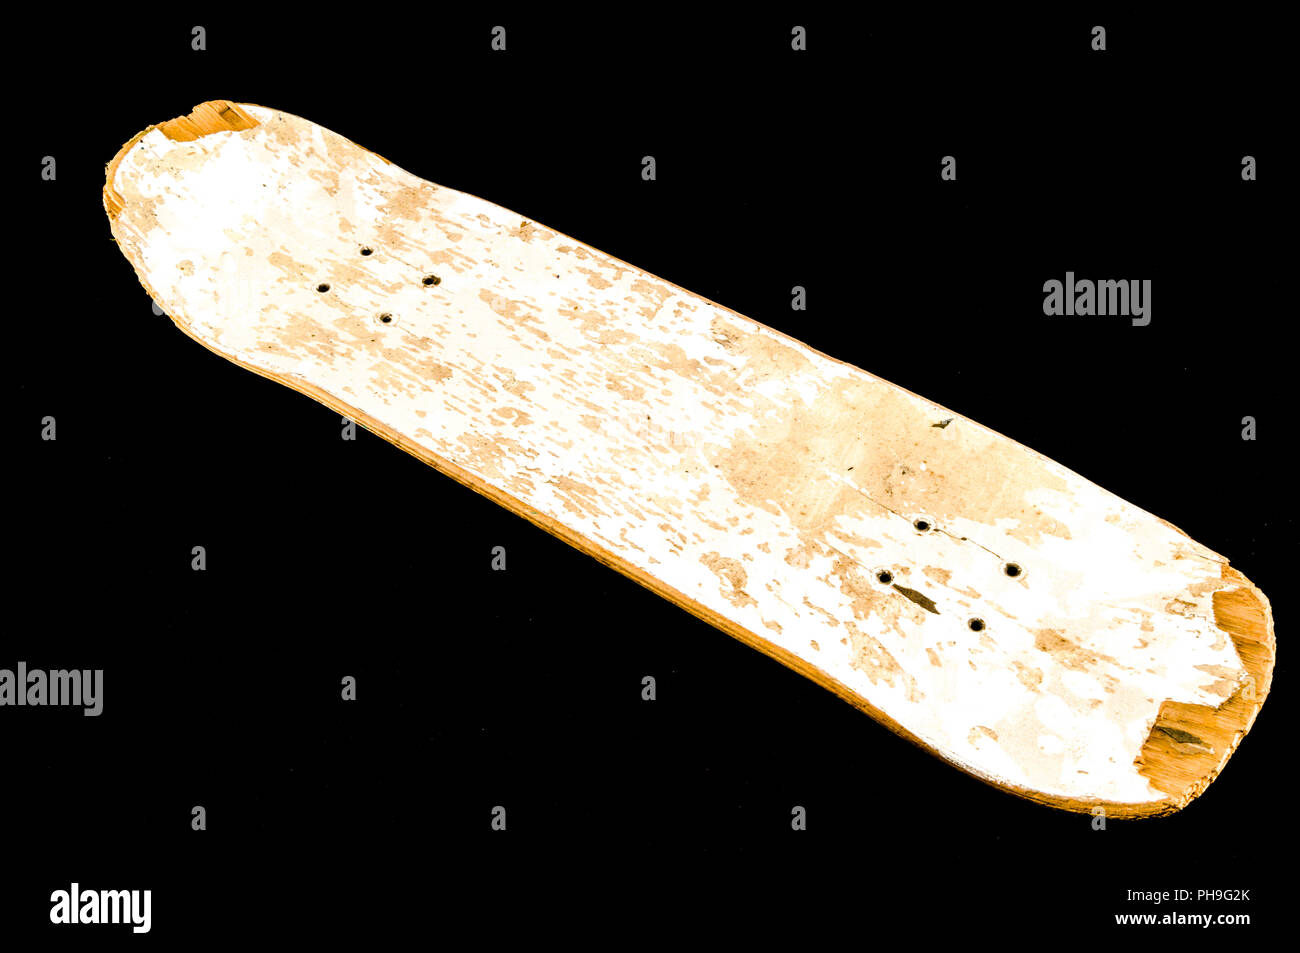 d33b699353 old used wooden skateboard · Zoonar GmbH / Alamy Stock Photo